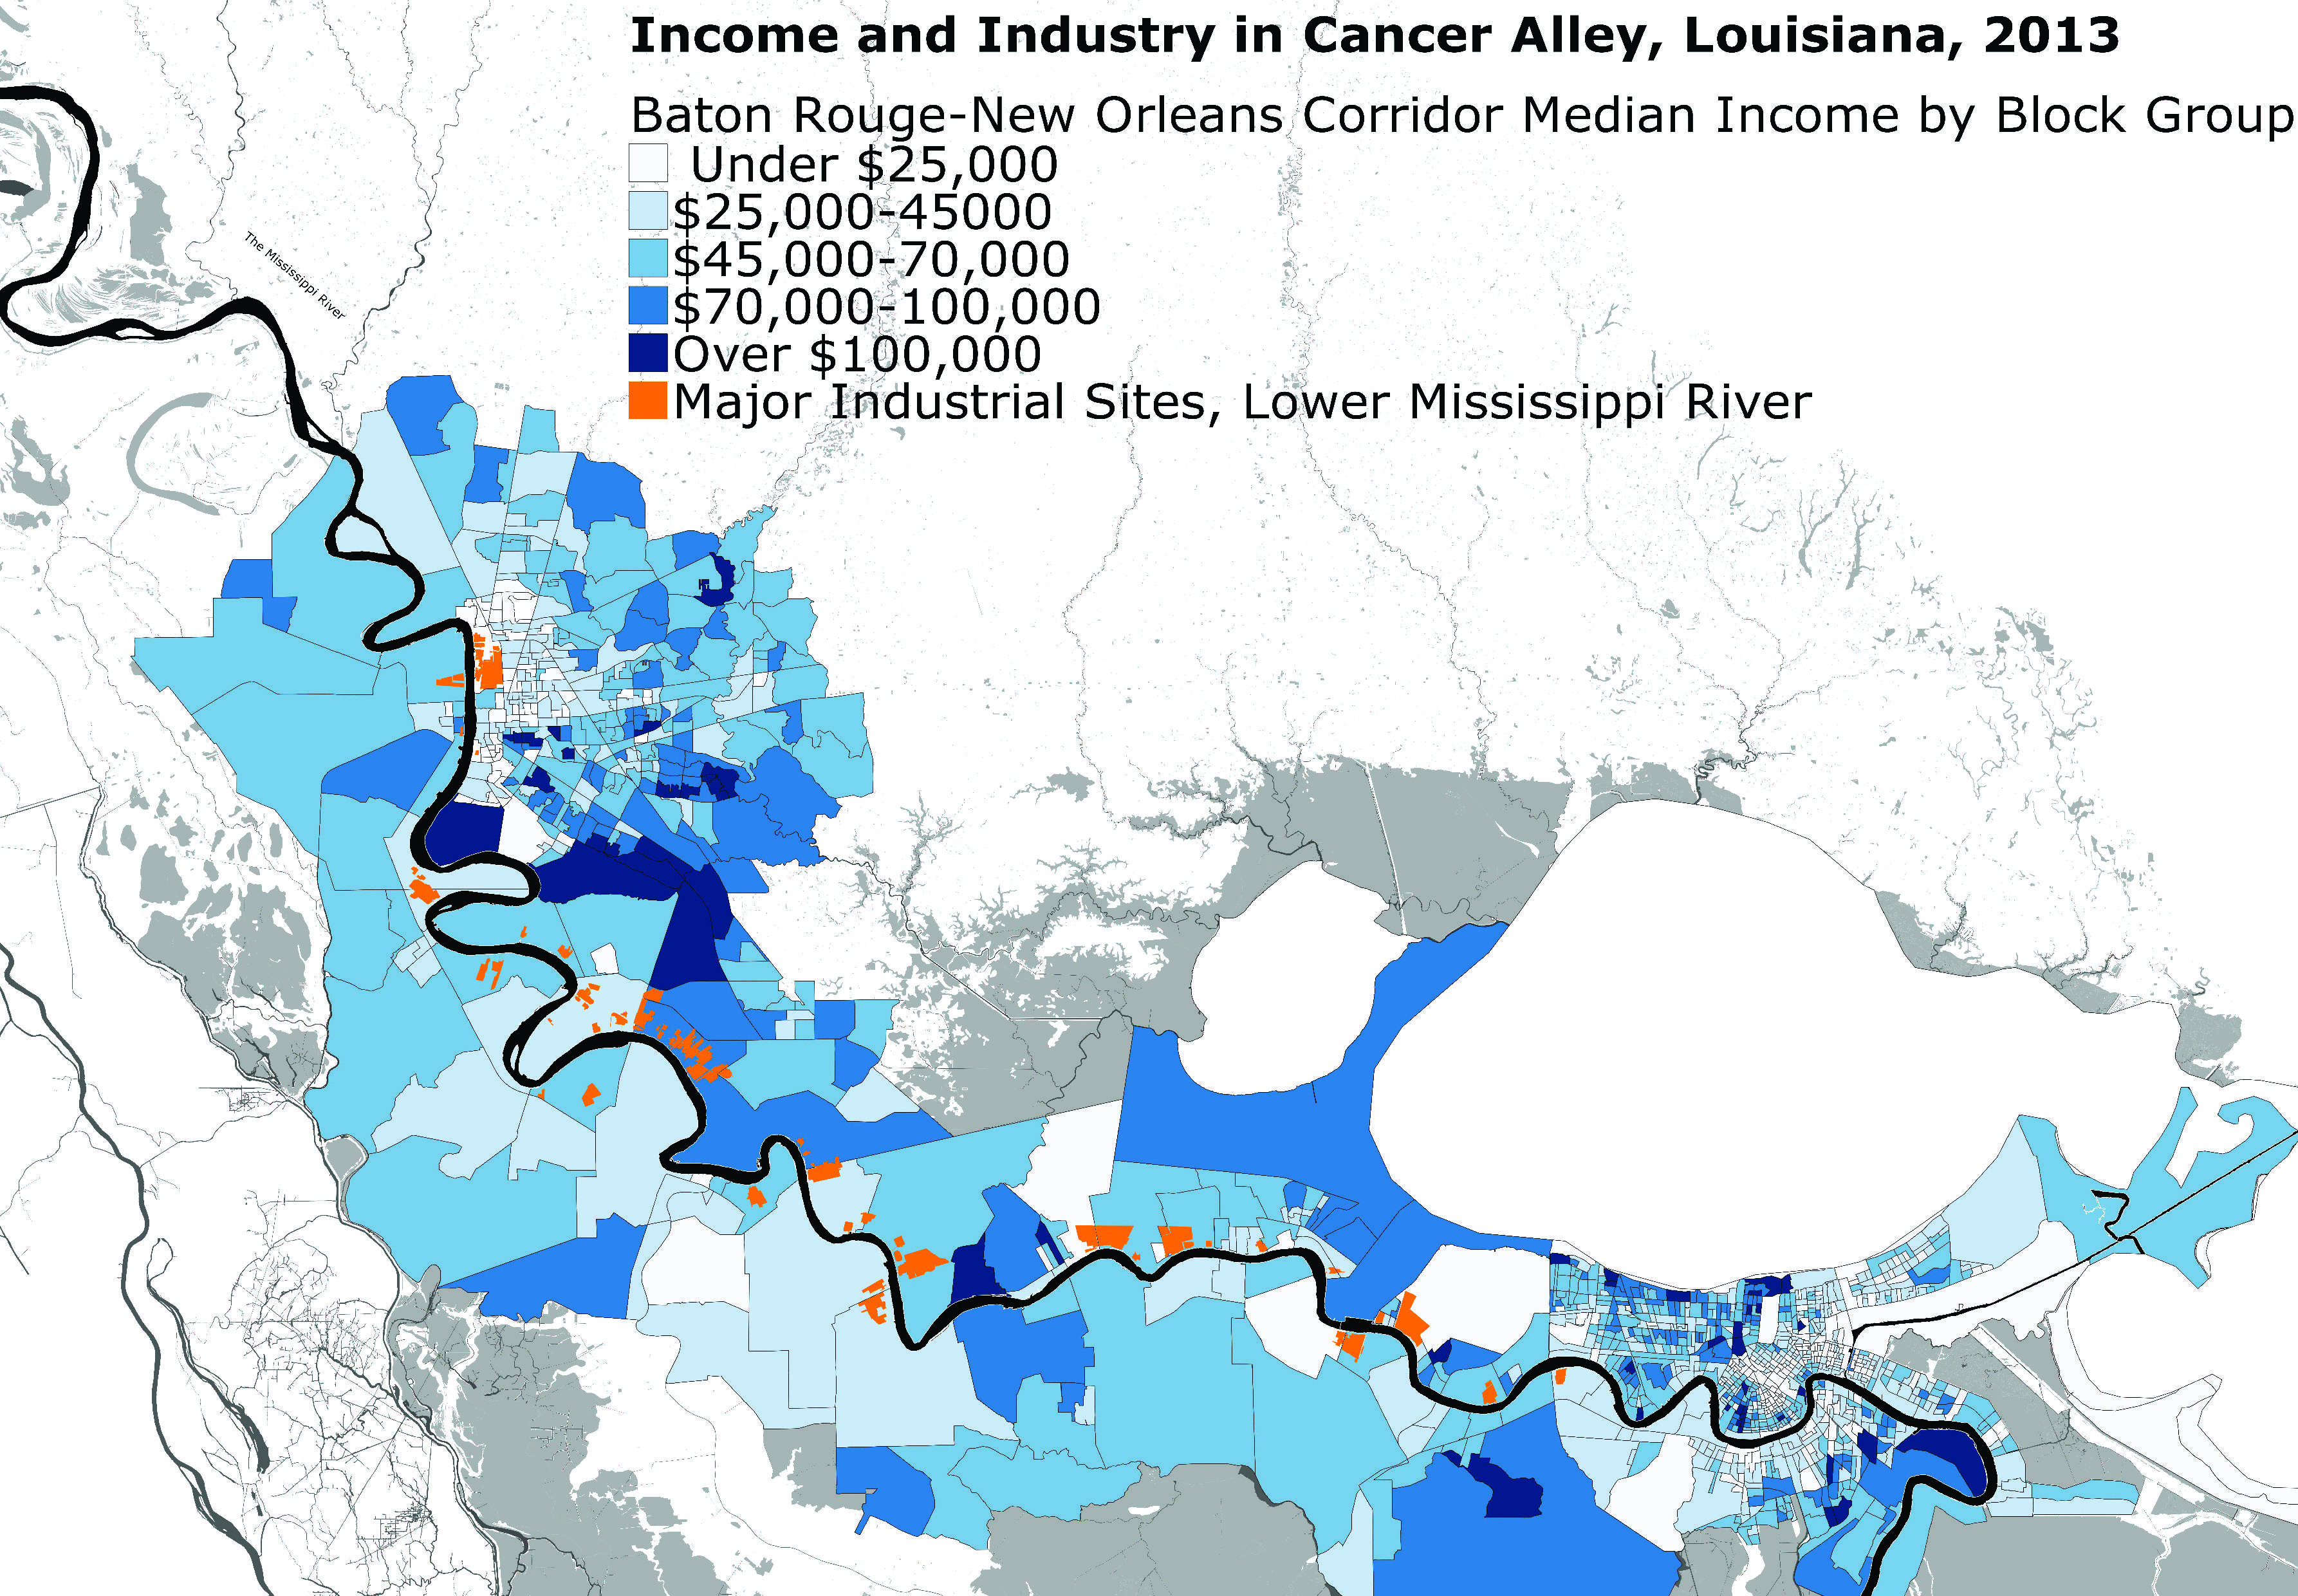 alley louisiana map Louisiana S Most Unpopular Attraction Cancer Alley Lieutenant alley louisiana map